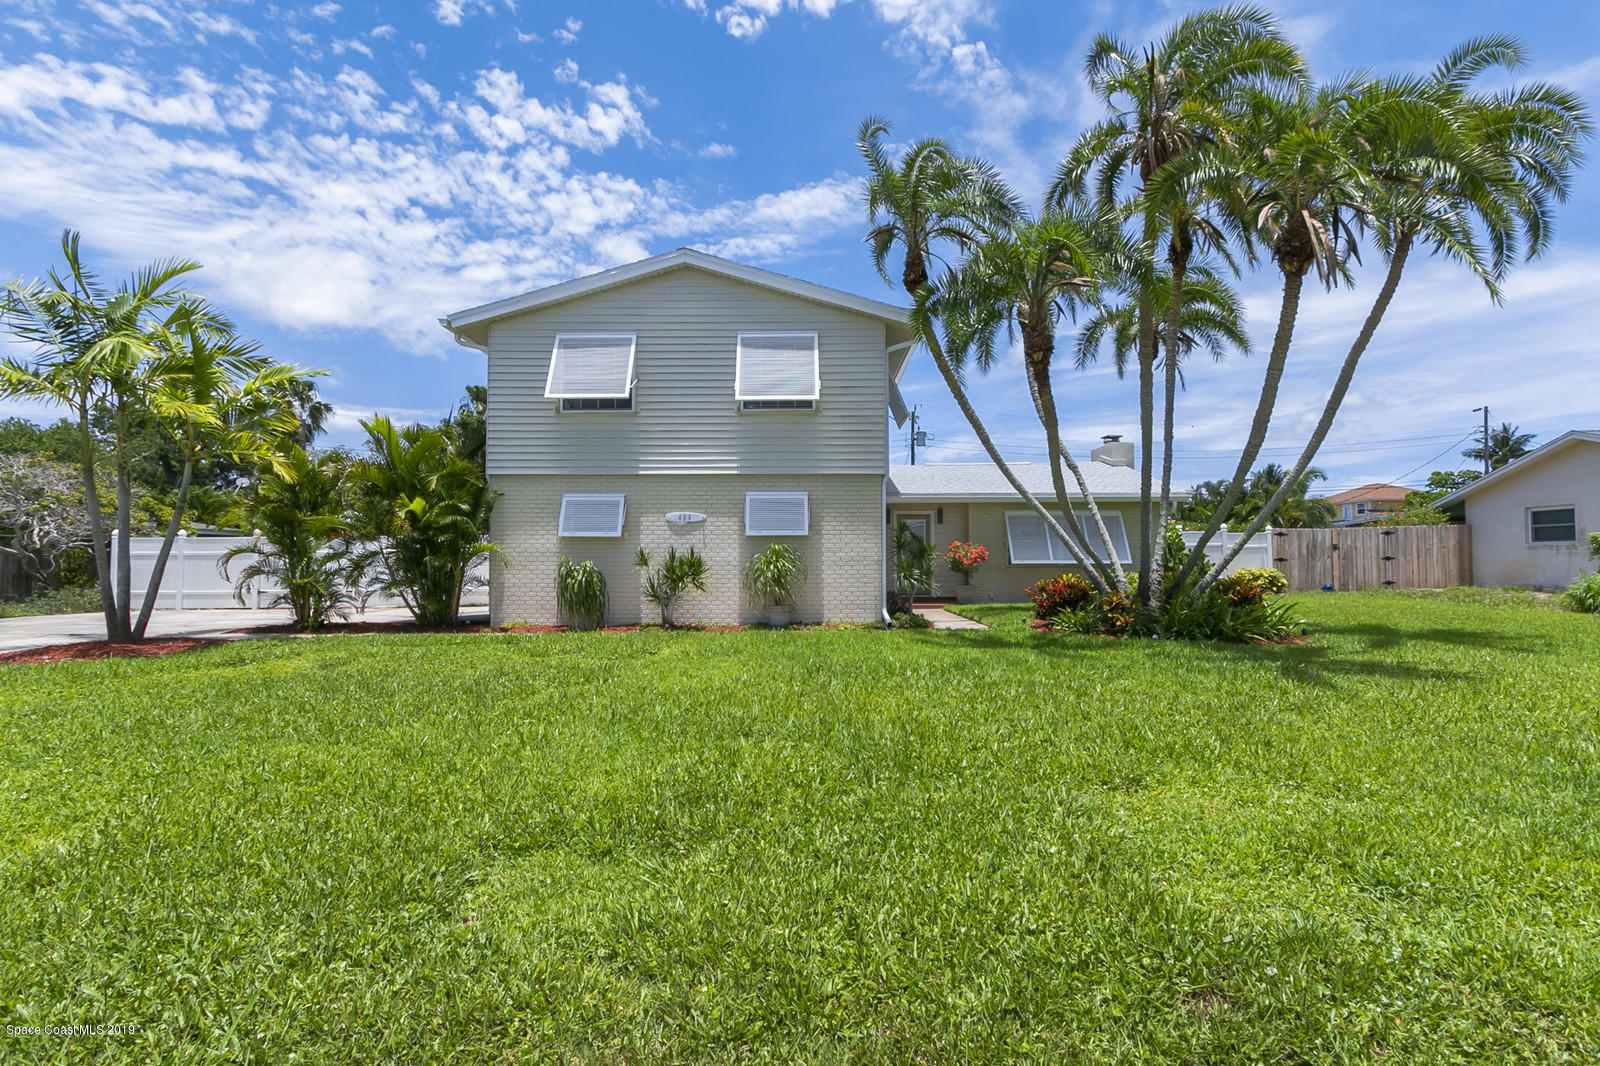 Single Family Homes for Sale at 404 Driftwood Melbourne Beach, Florida 32951 United States